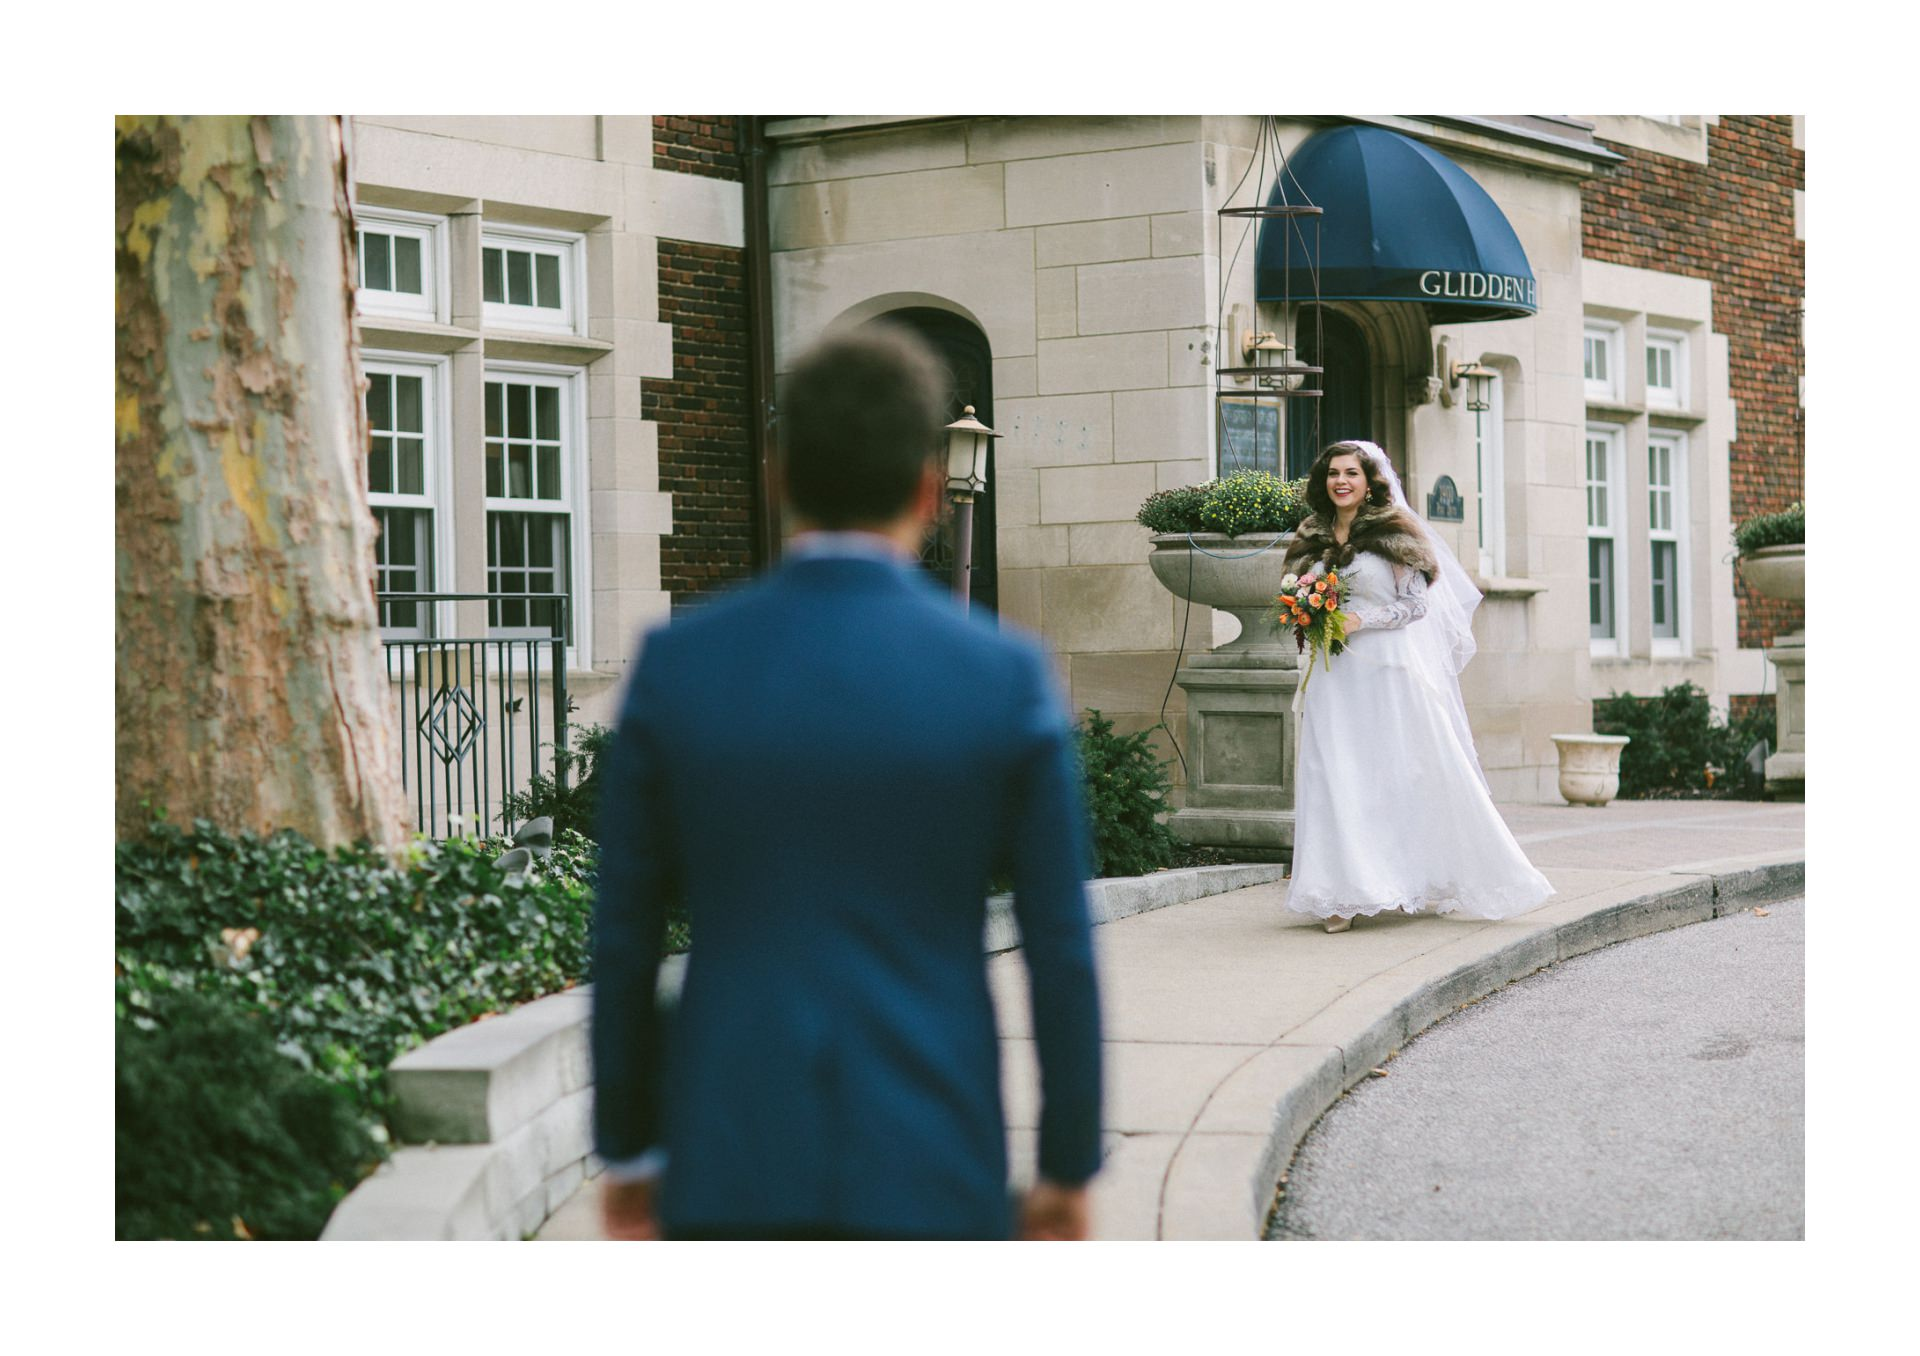 Wedding at the Glidden House in Cleveland 1 18.jpg